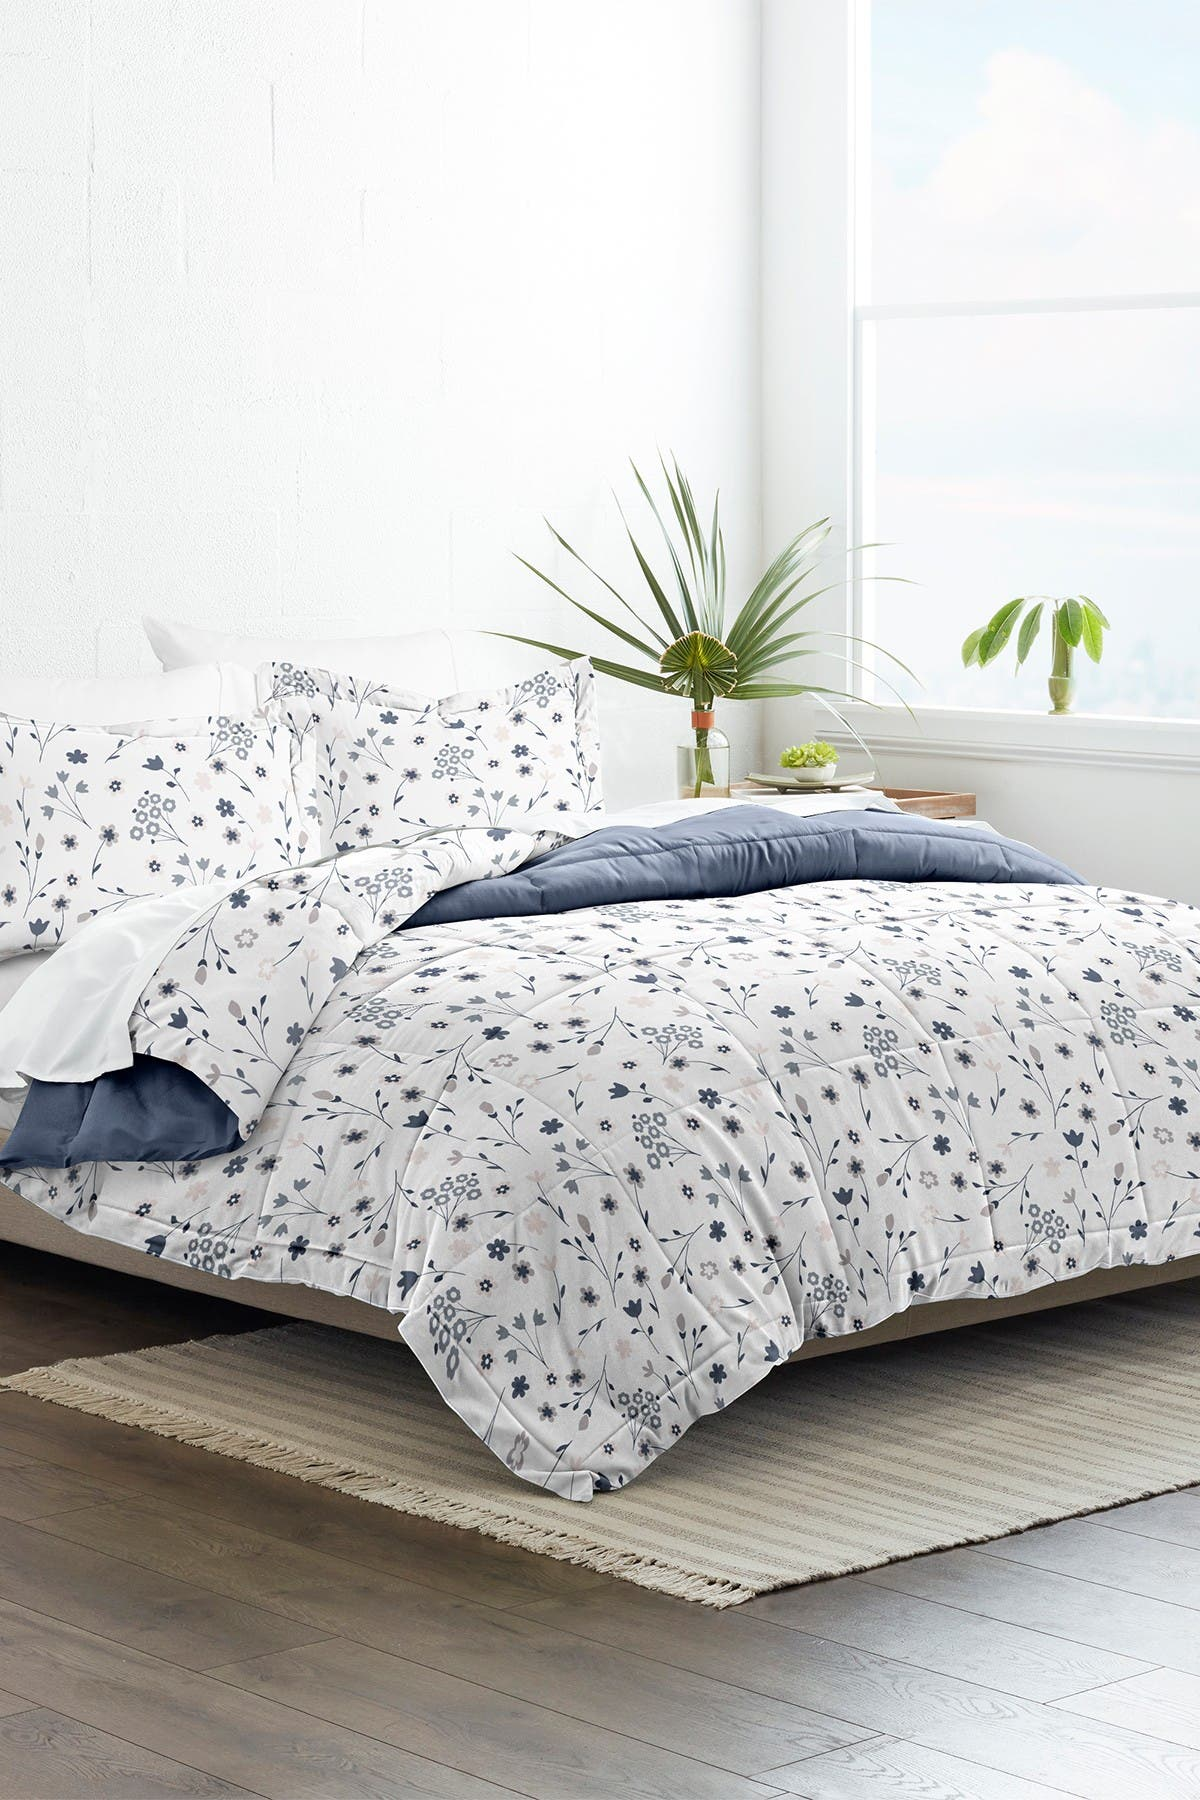 Image of IENJOY HOME Home Collection Premium Down Alternative Forget Me Not Reversible Full/Queen Comforter 3-Piece Set - Navy